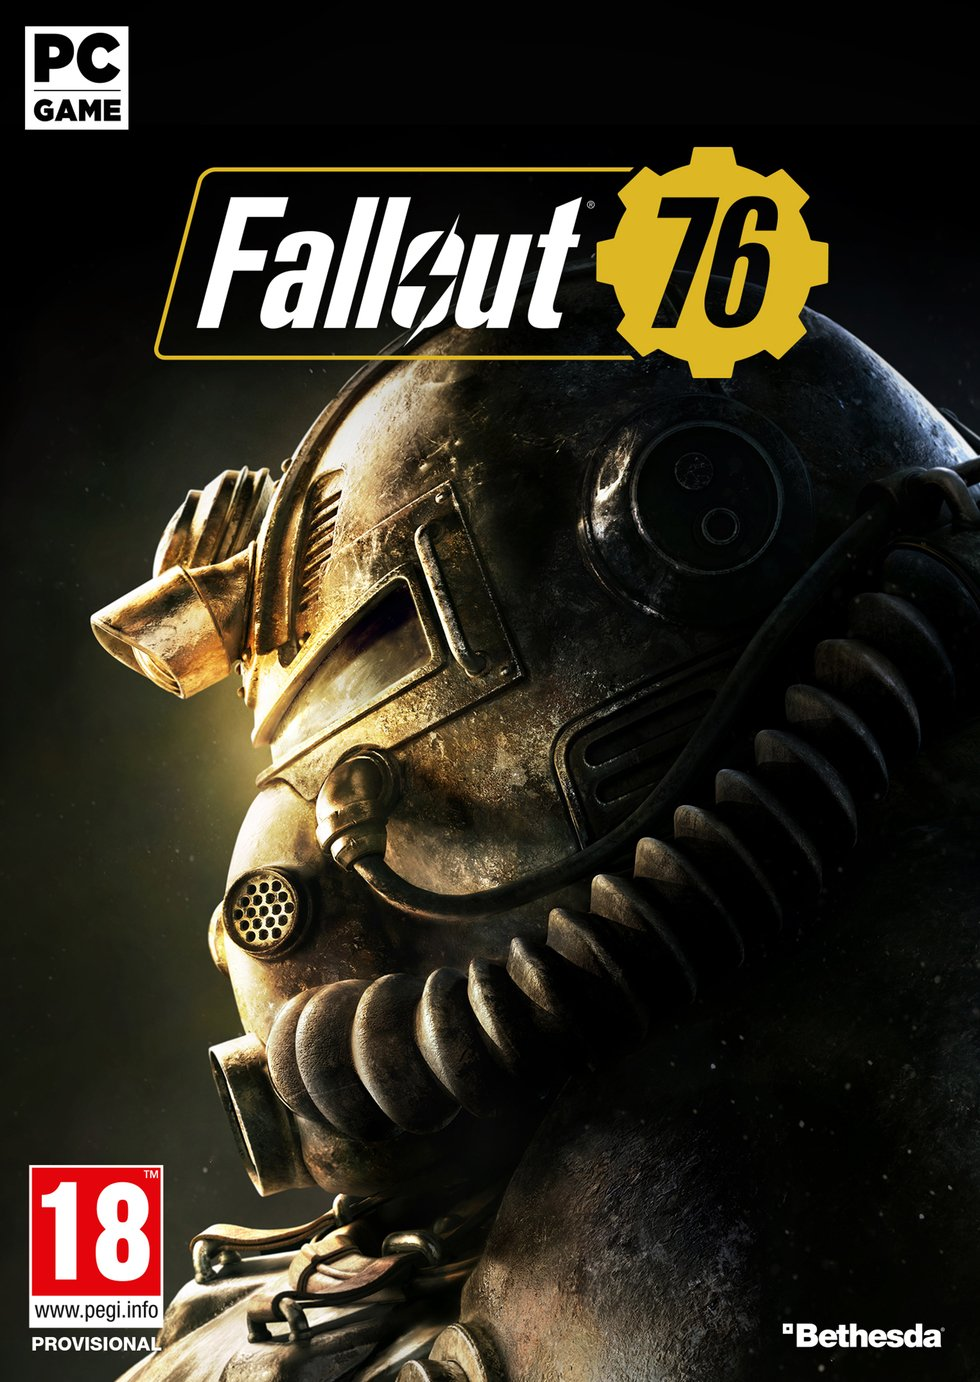 Fallout 76 PC Pre-Order Game